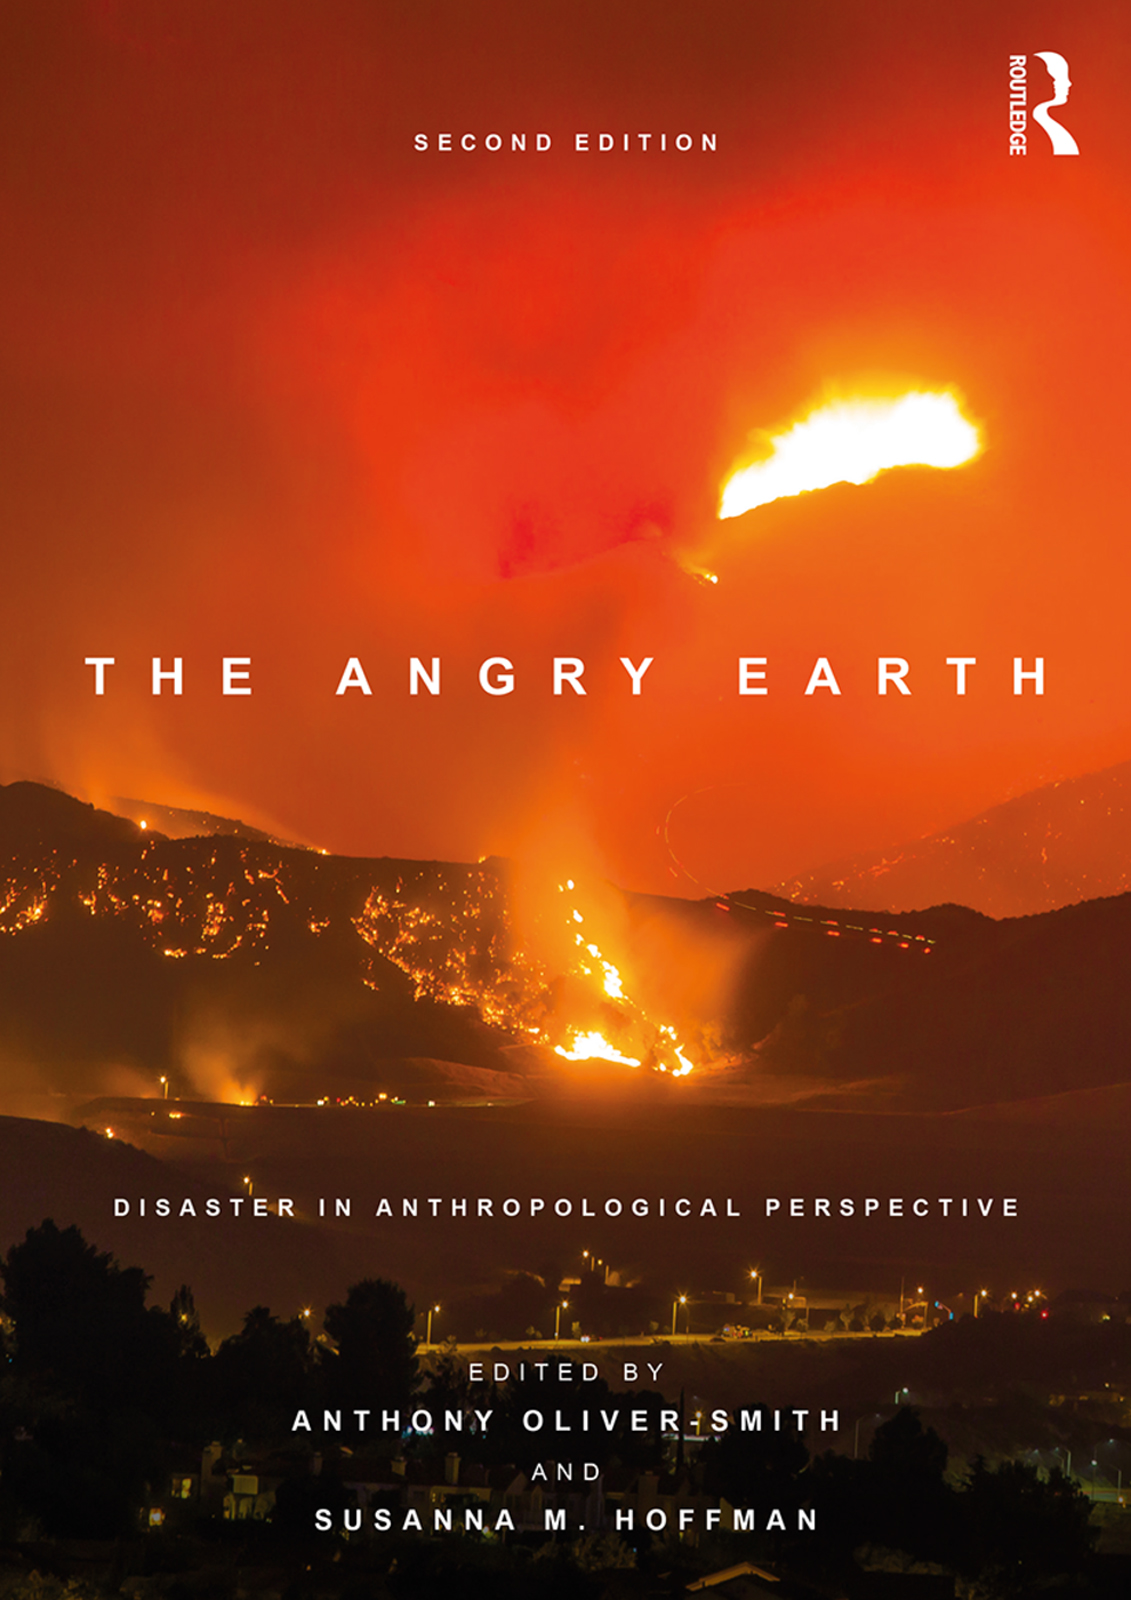 The Angry Earth: Disaster in Anthropological Perspective book cover